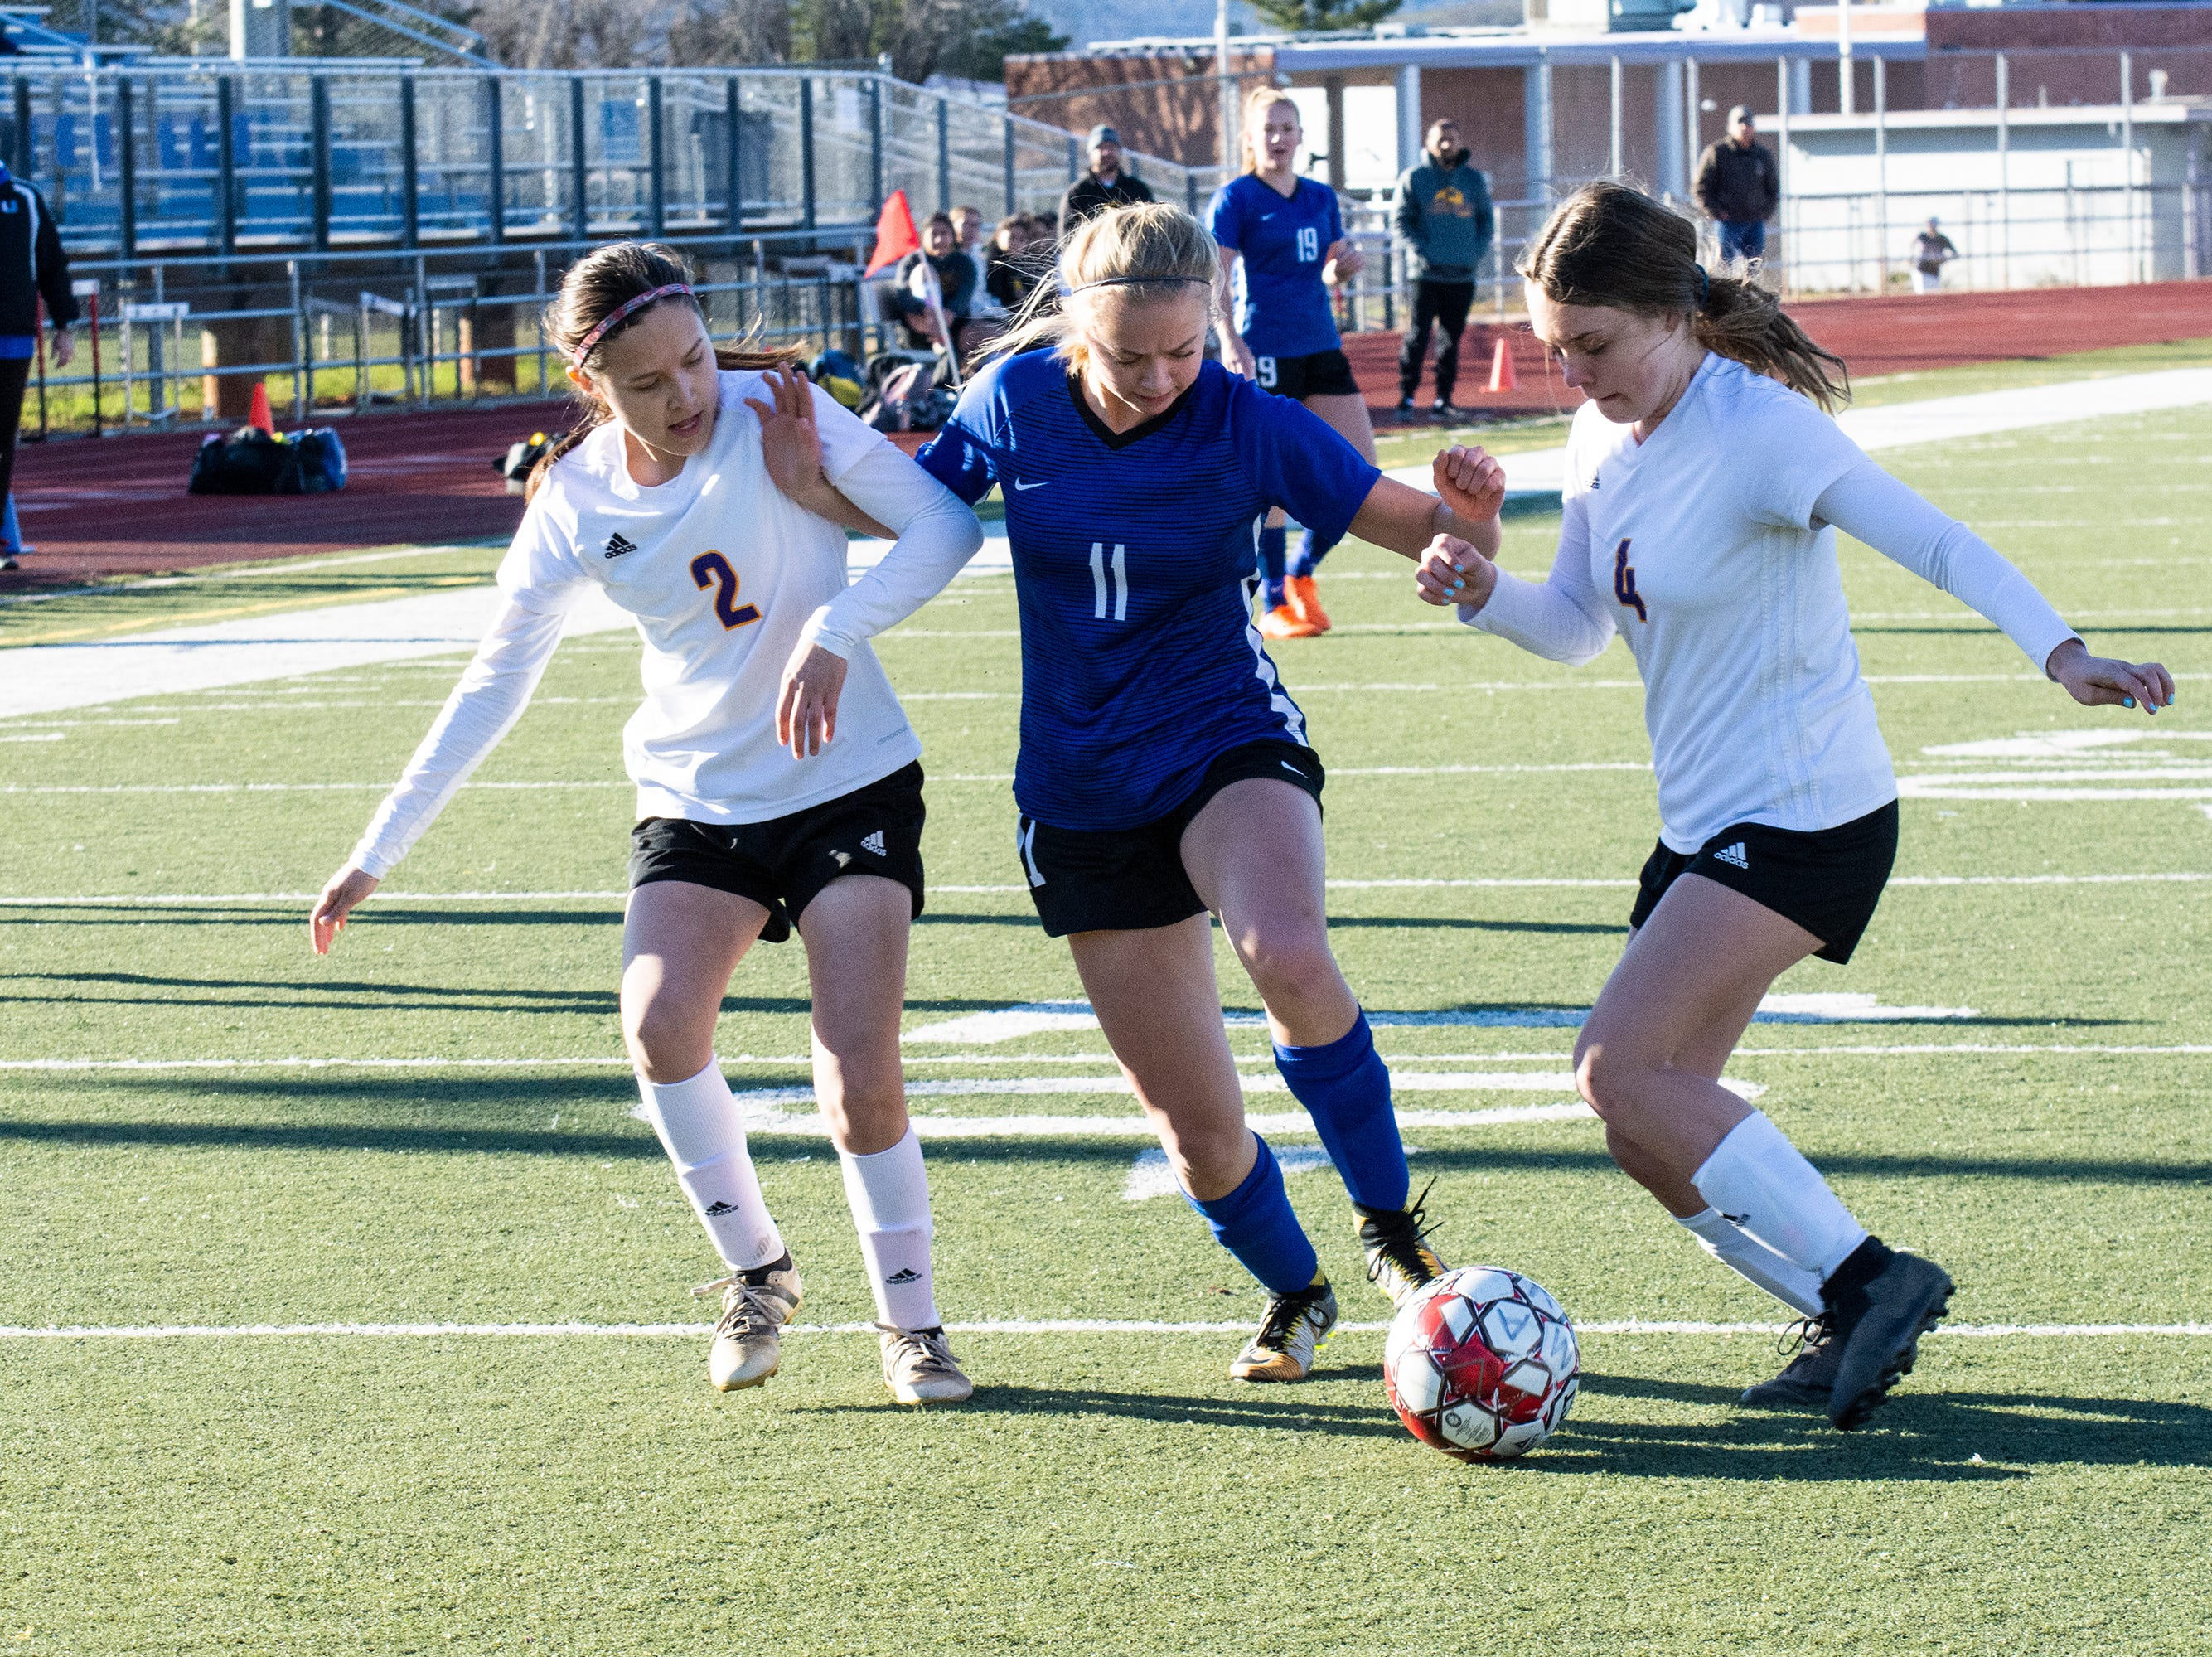 U-Prep's Ryanne Ampi battles with Live Oak's Estefania Hernandez (2) and Bella Goodson (4) during the Panthers' 6-0 win in a Division II Northern Section semifinal on Thursday, Feb. 21.